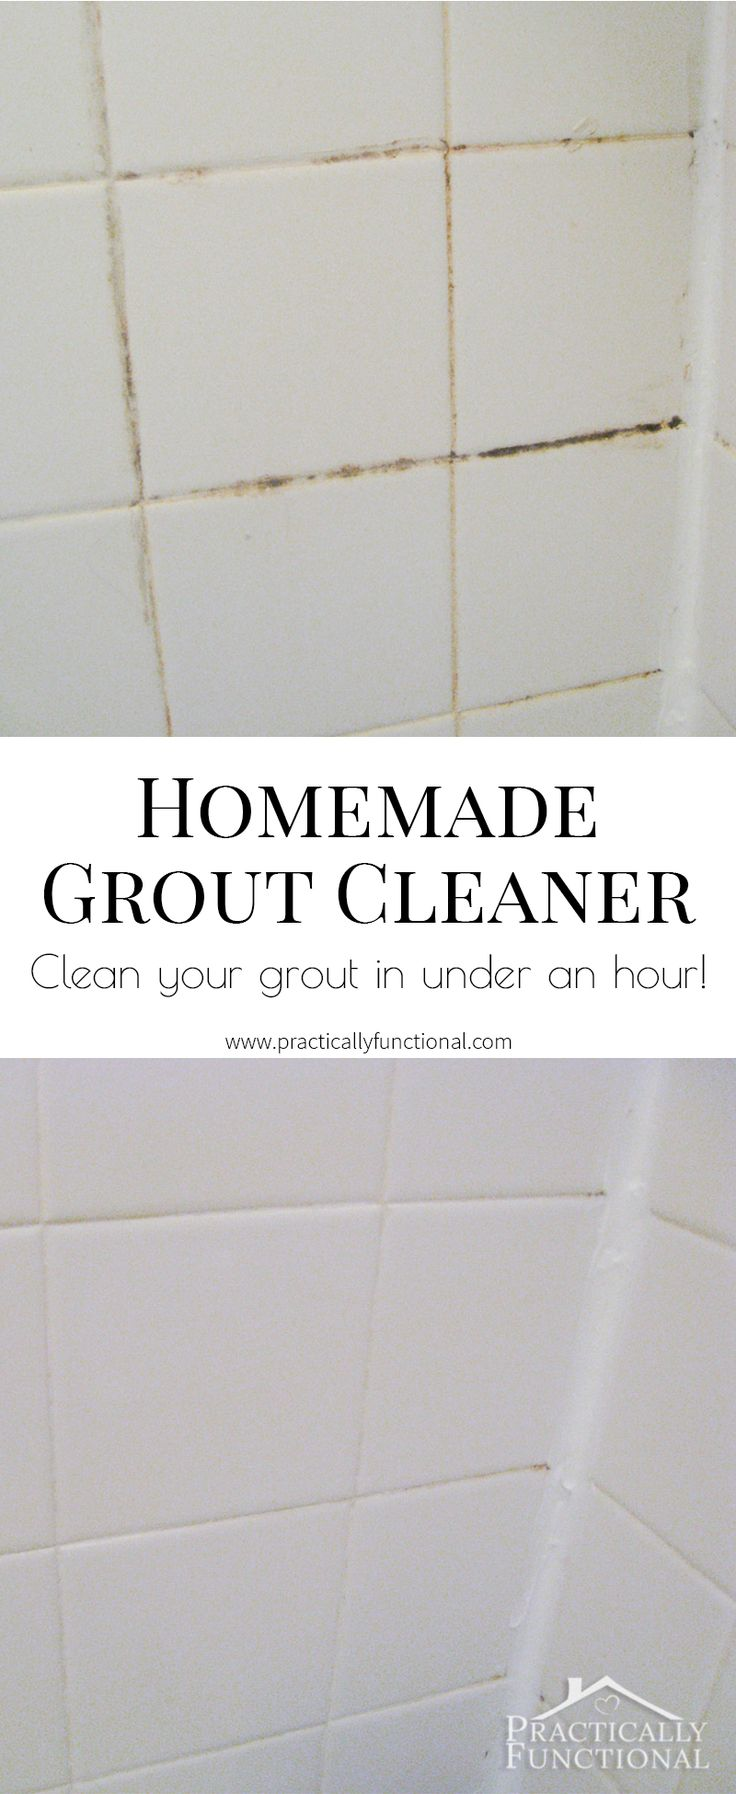 Best 25 Homemade grout cleaner ideas on Pinterest Tile grout